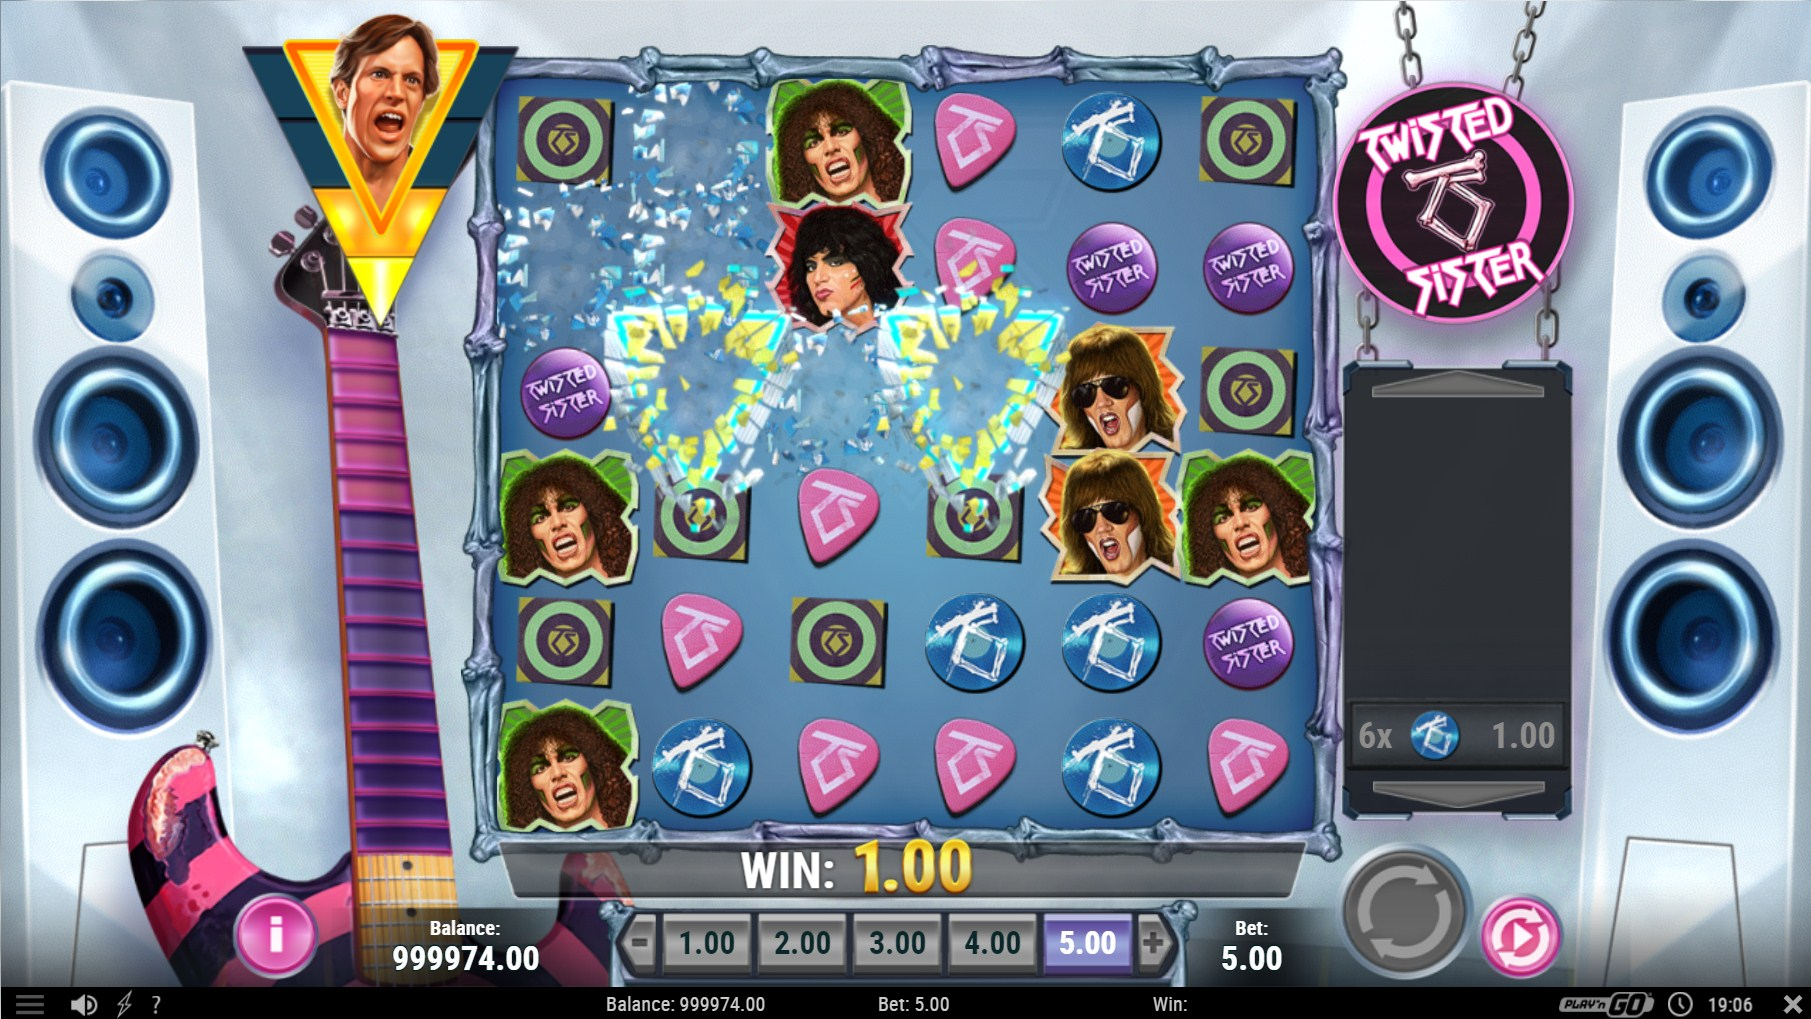 twisted-sister-slot-gameplay